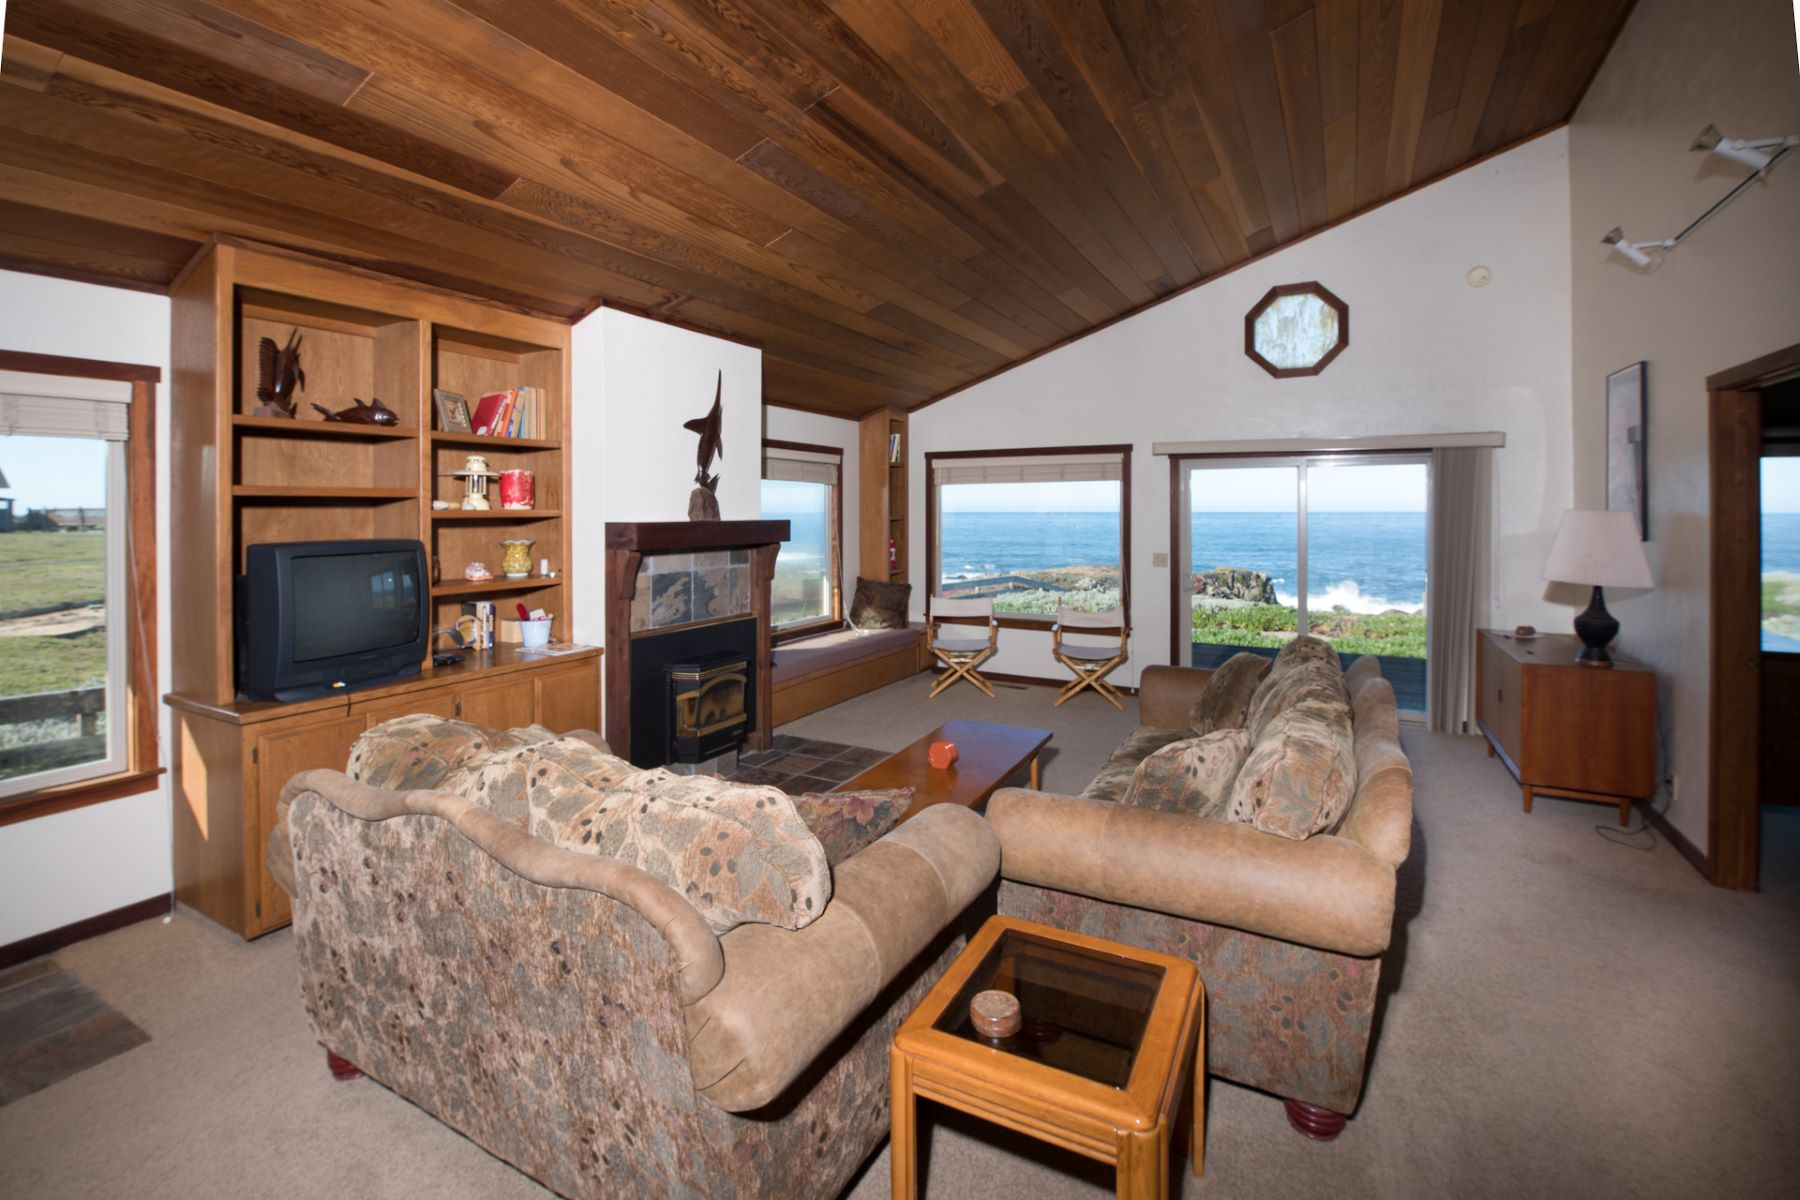 Additional photo for property listing at Whitewater Oceanfront Getaway 33610 Schoefer Lane Fort Bragg, California 95437 Estados Unidos